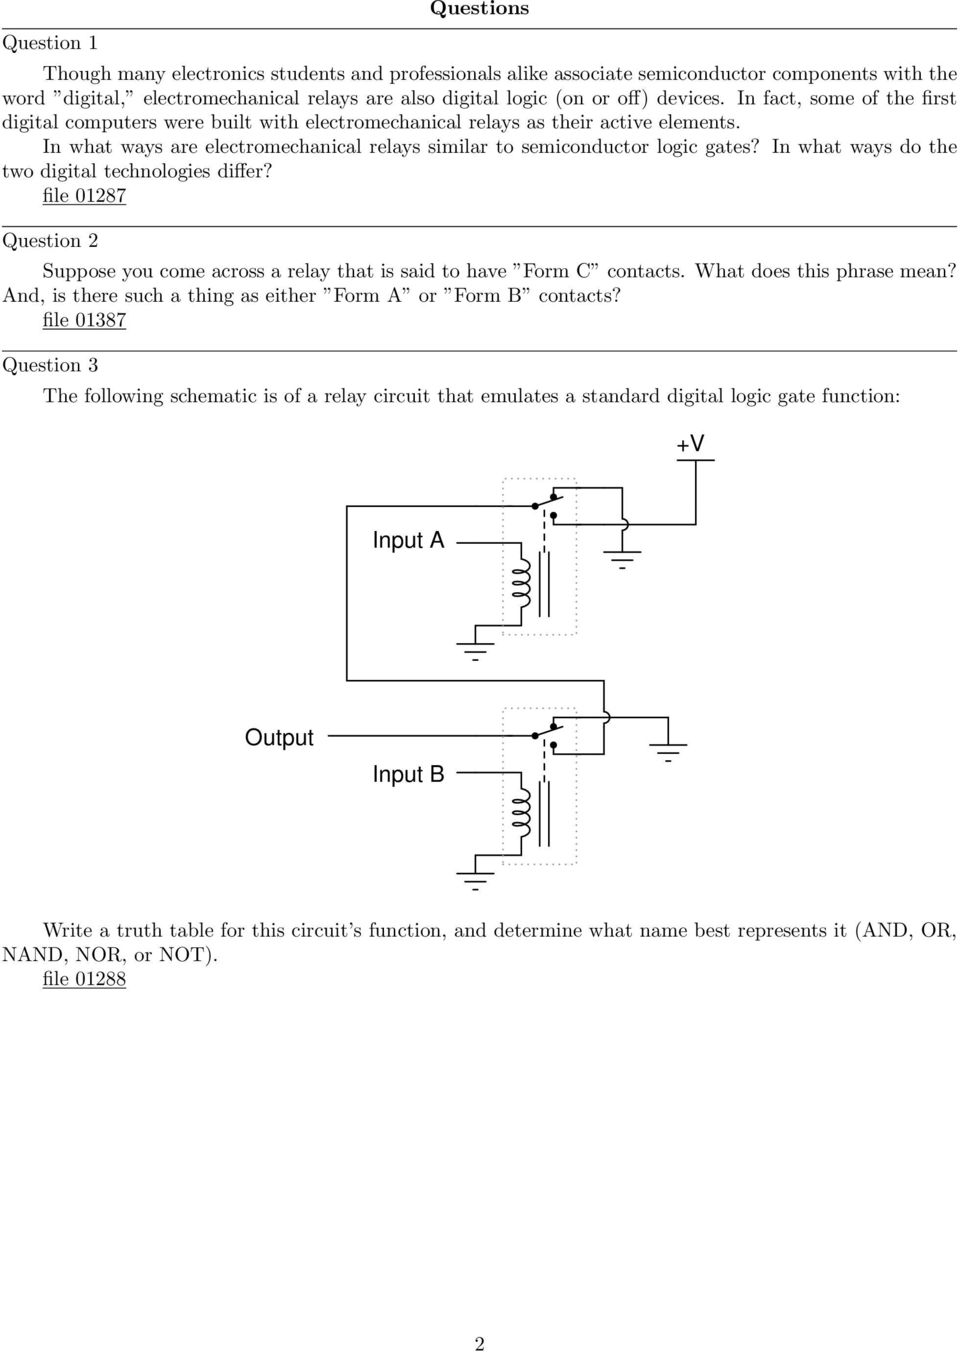 Electromechanical Relay Logic Pdf Ladder Diagram Nand Gate In What Ways Do The Two Digital Technologies Differ File 287 Question 2 Suppose You